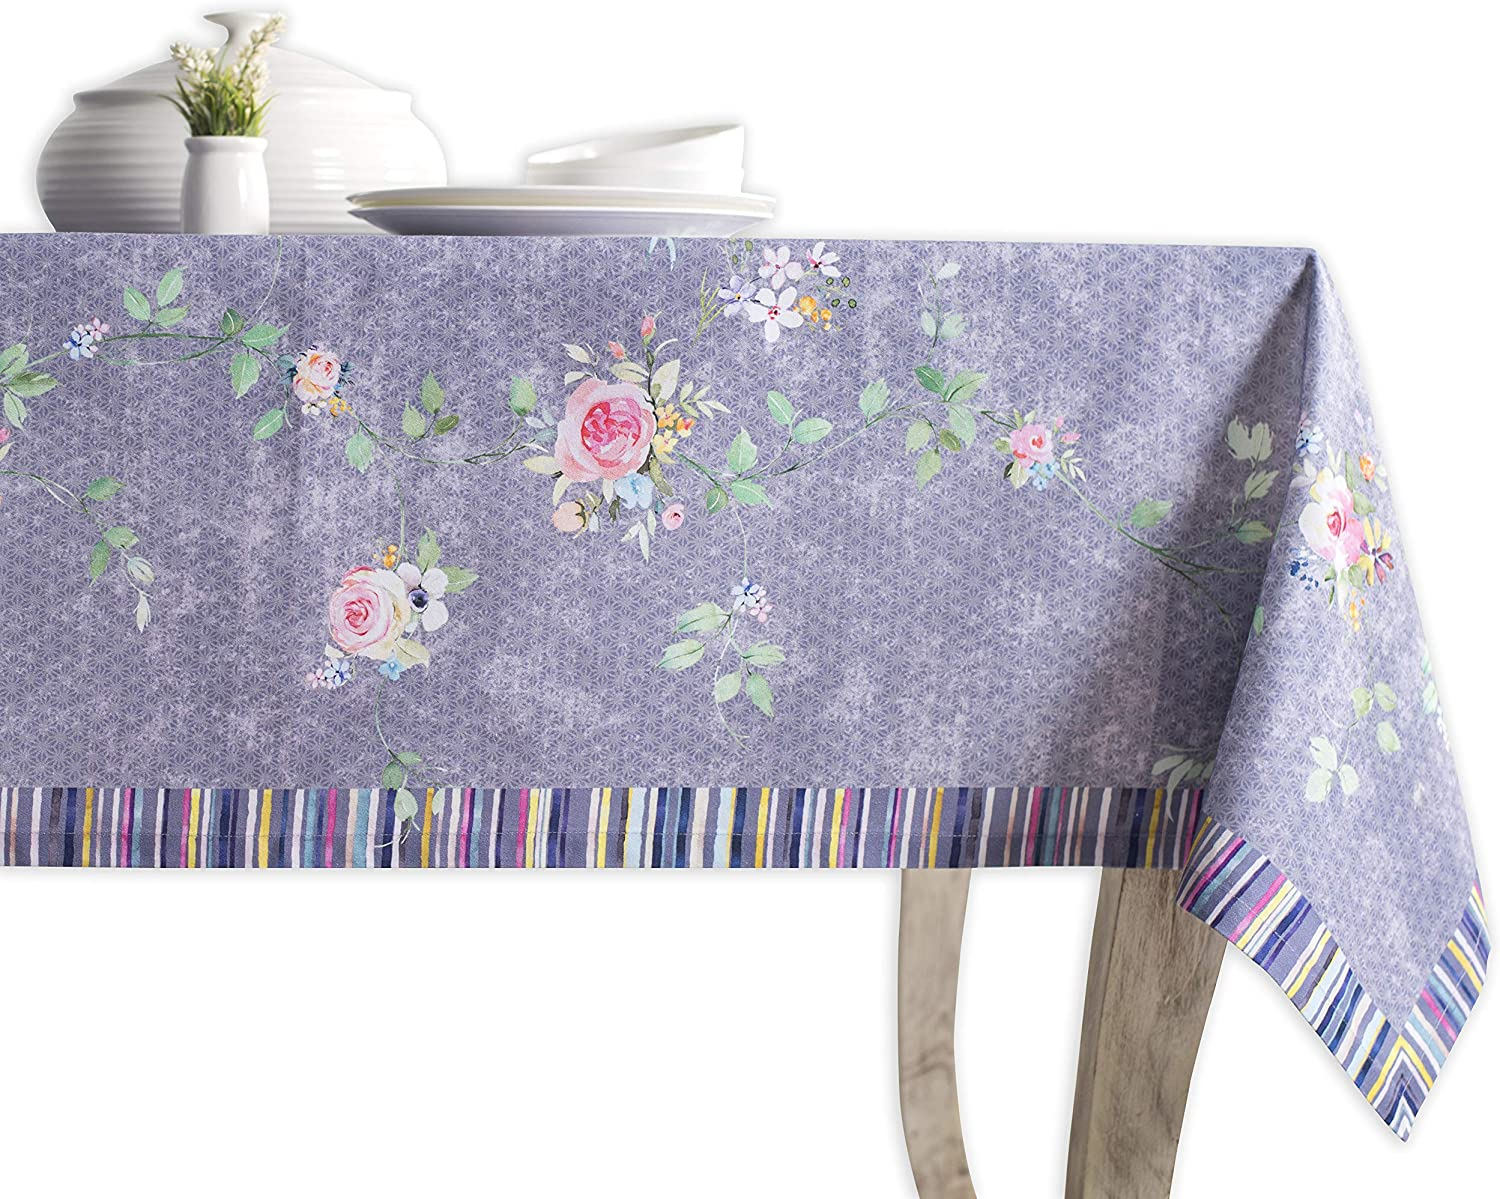 Maison d' Hermine Sweet pink Lavender 100% Cotton Country Garden Tablecloth 60 Inch by 108 Inch